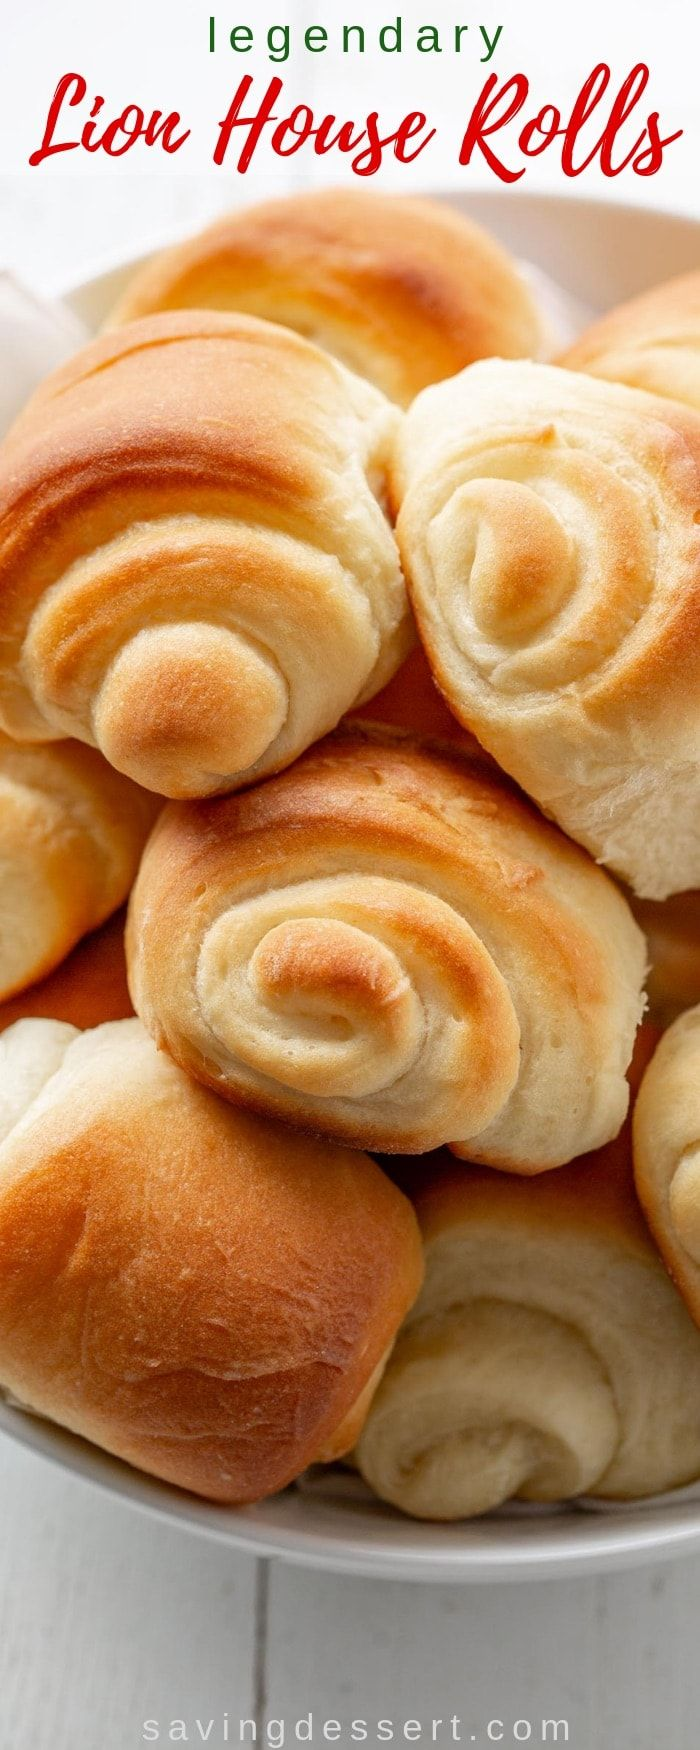 Lion House Rolls Recipe With Images Homemade Rolls Recipe